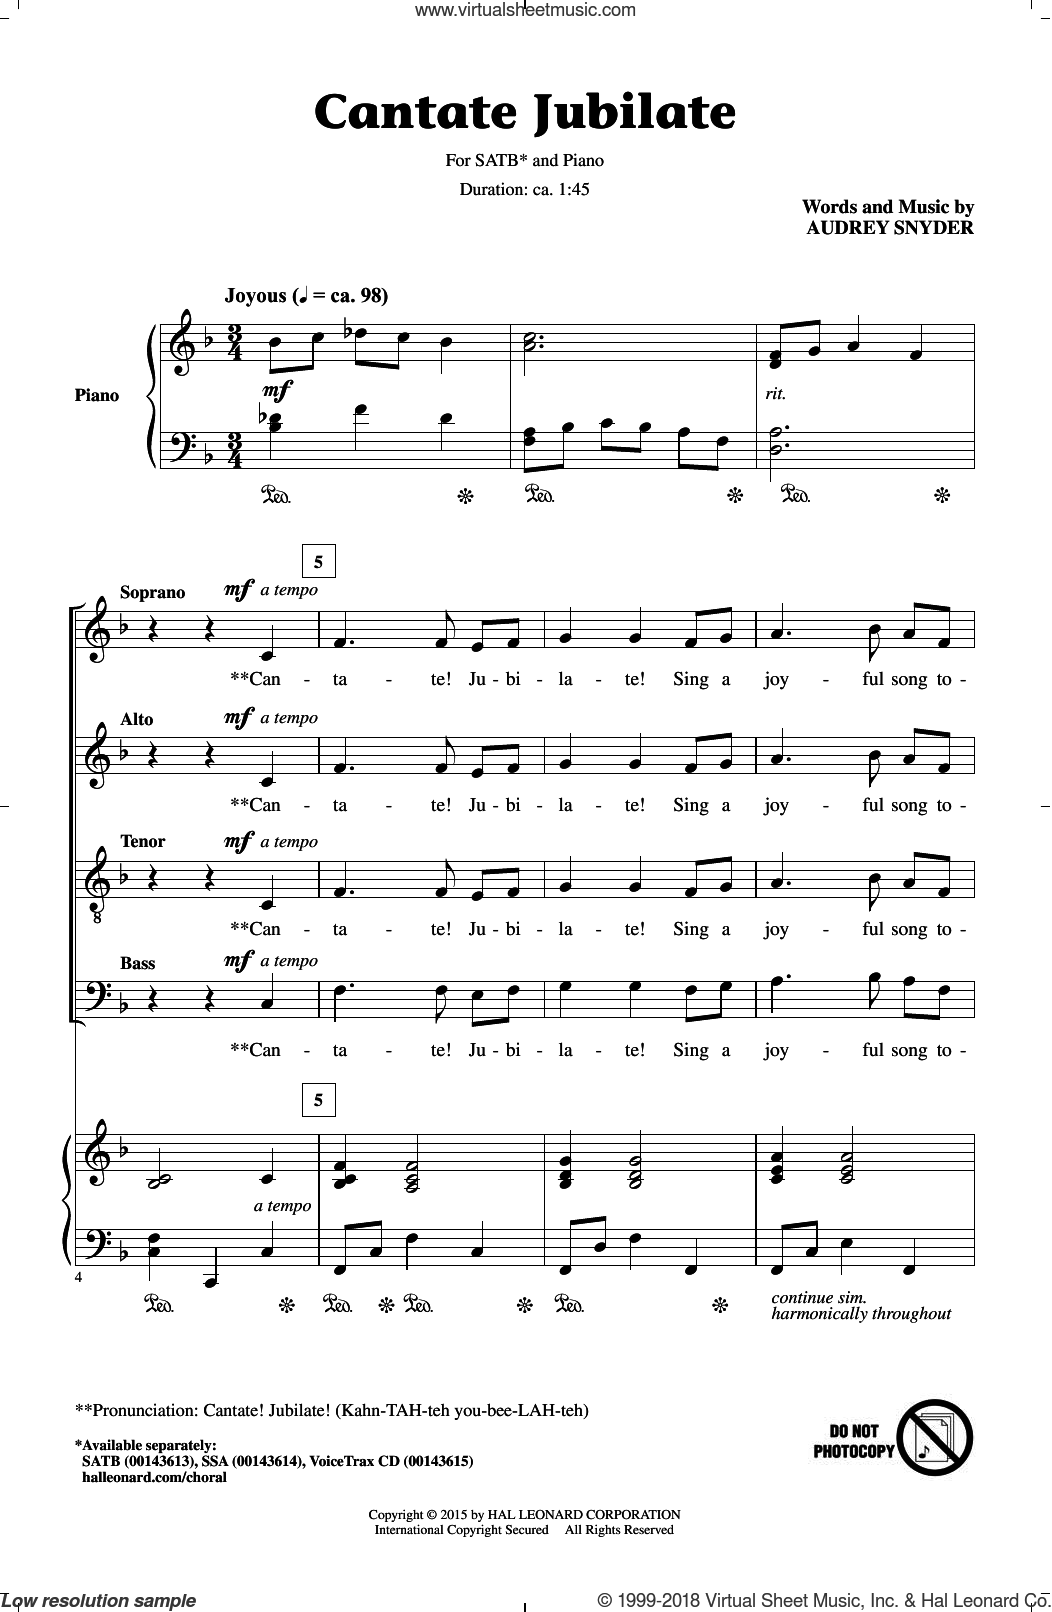 Cantate Jubilate sheet music for choir and piano (SATB) by Audrey Snyder